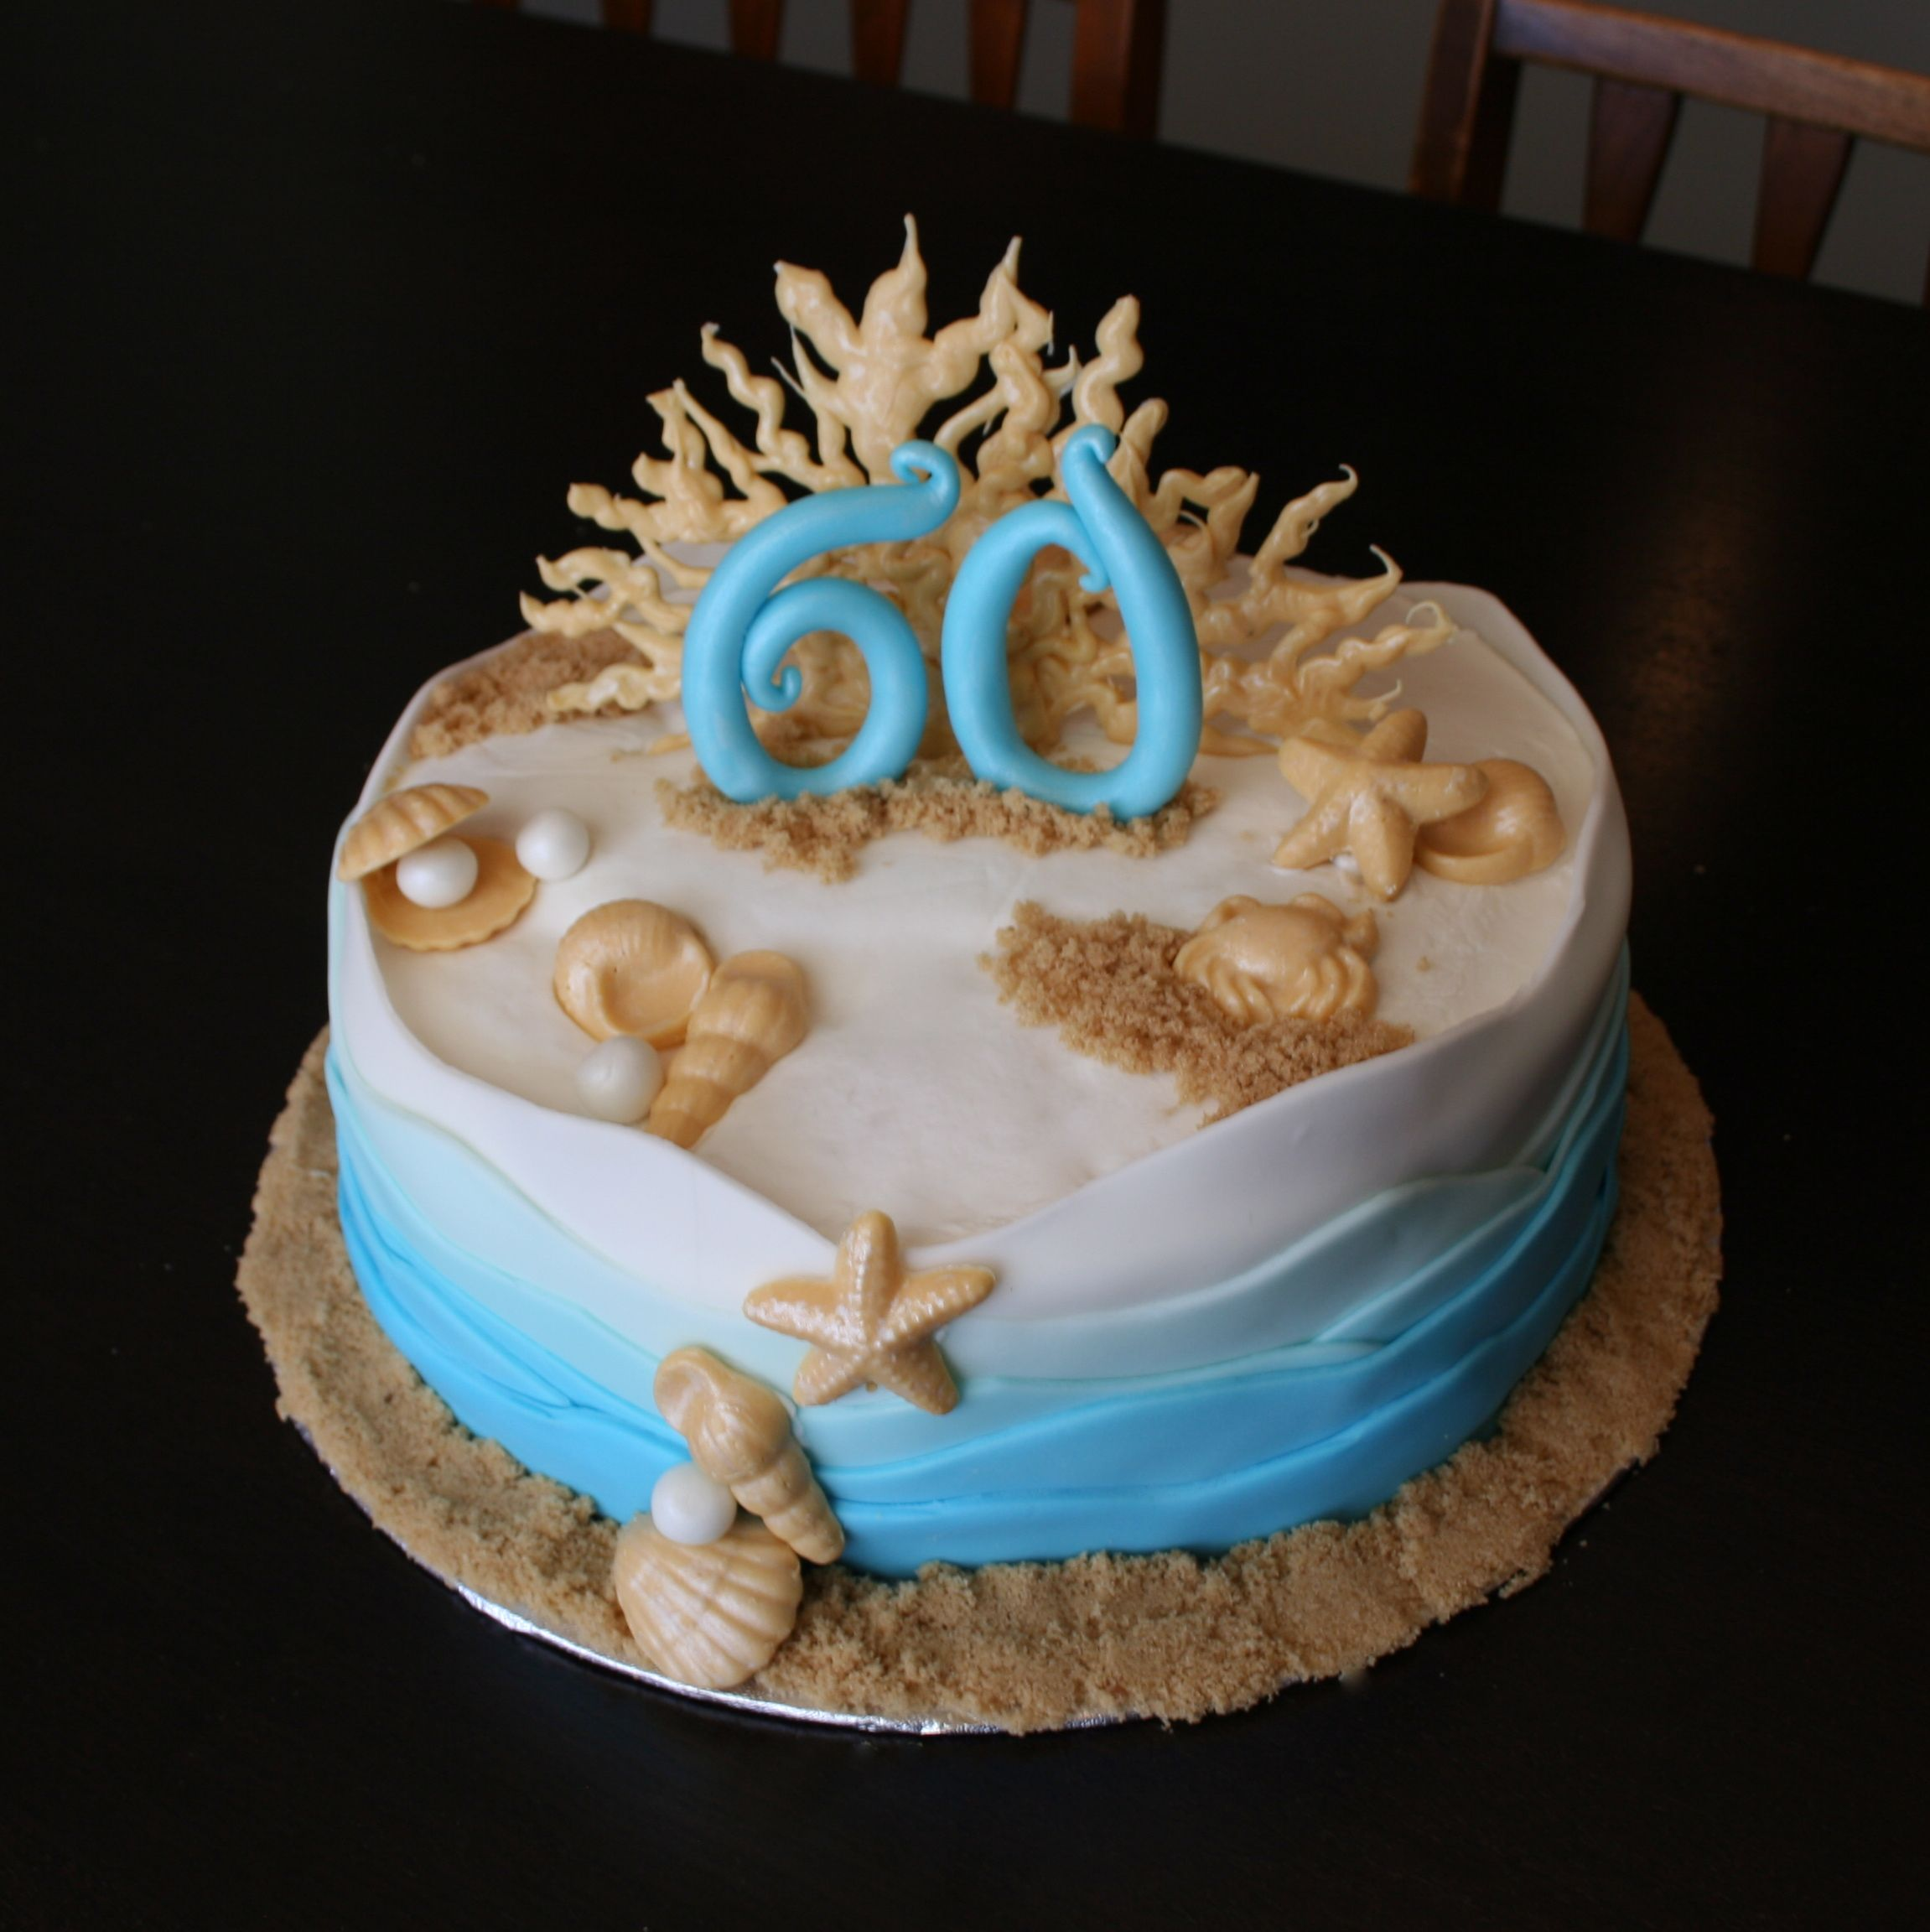 Sophisticated Elegant Coastal Beach Themed 60th Birthday Cake Www Polkadota Com